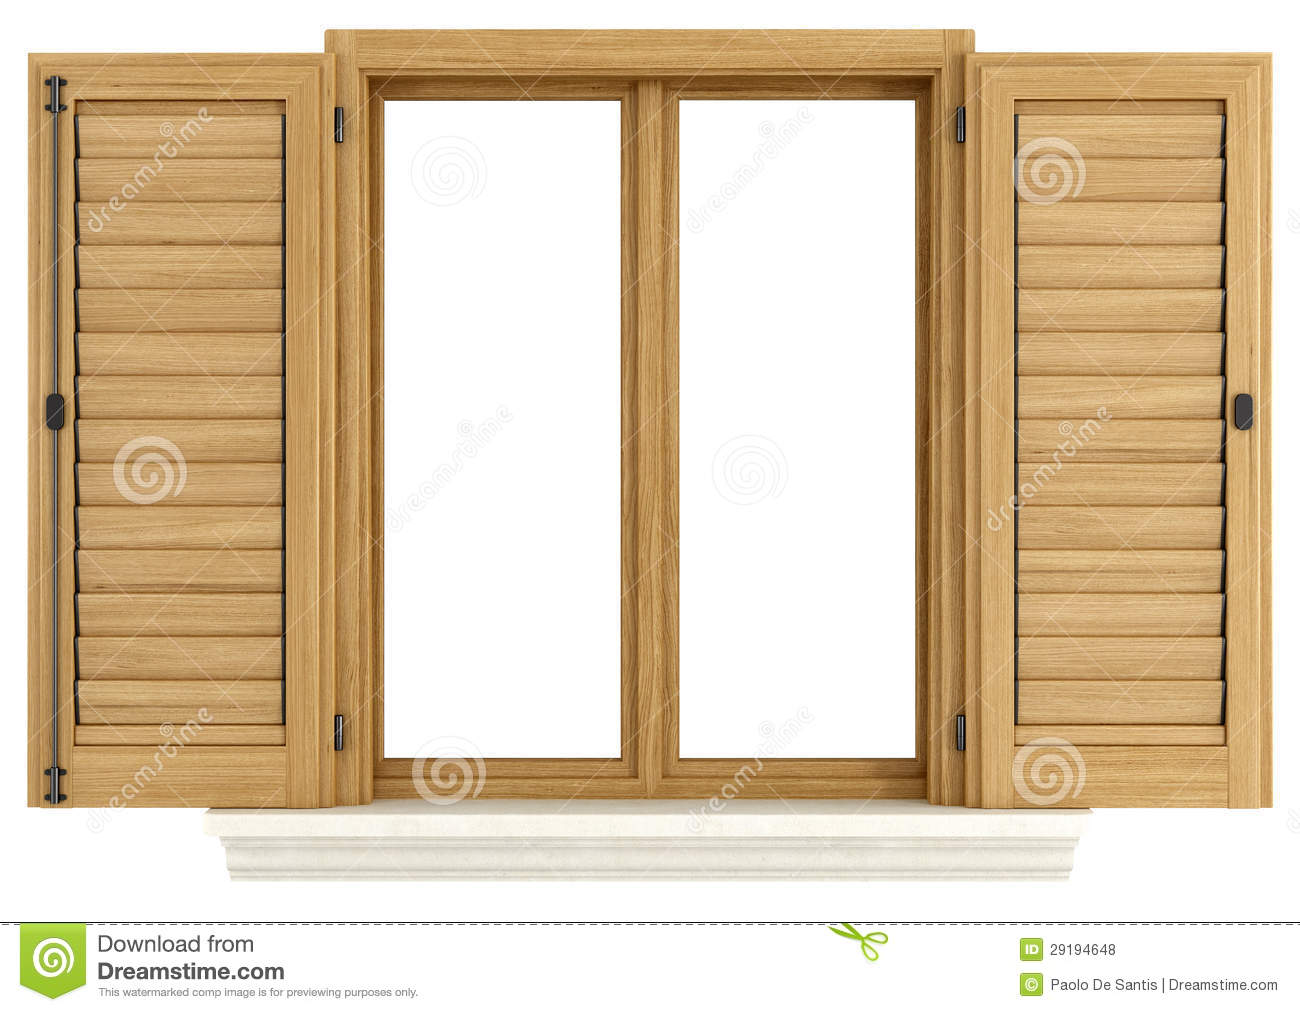 Wooden Window With Open Shutter Royalty Free Stock Photos Image.